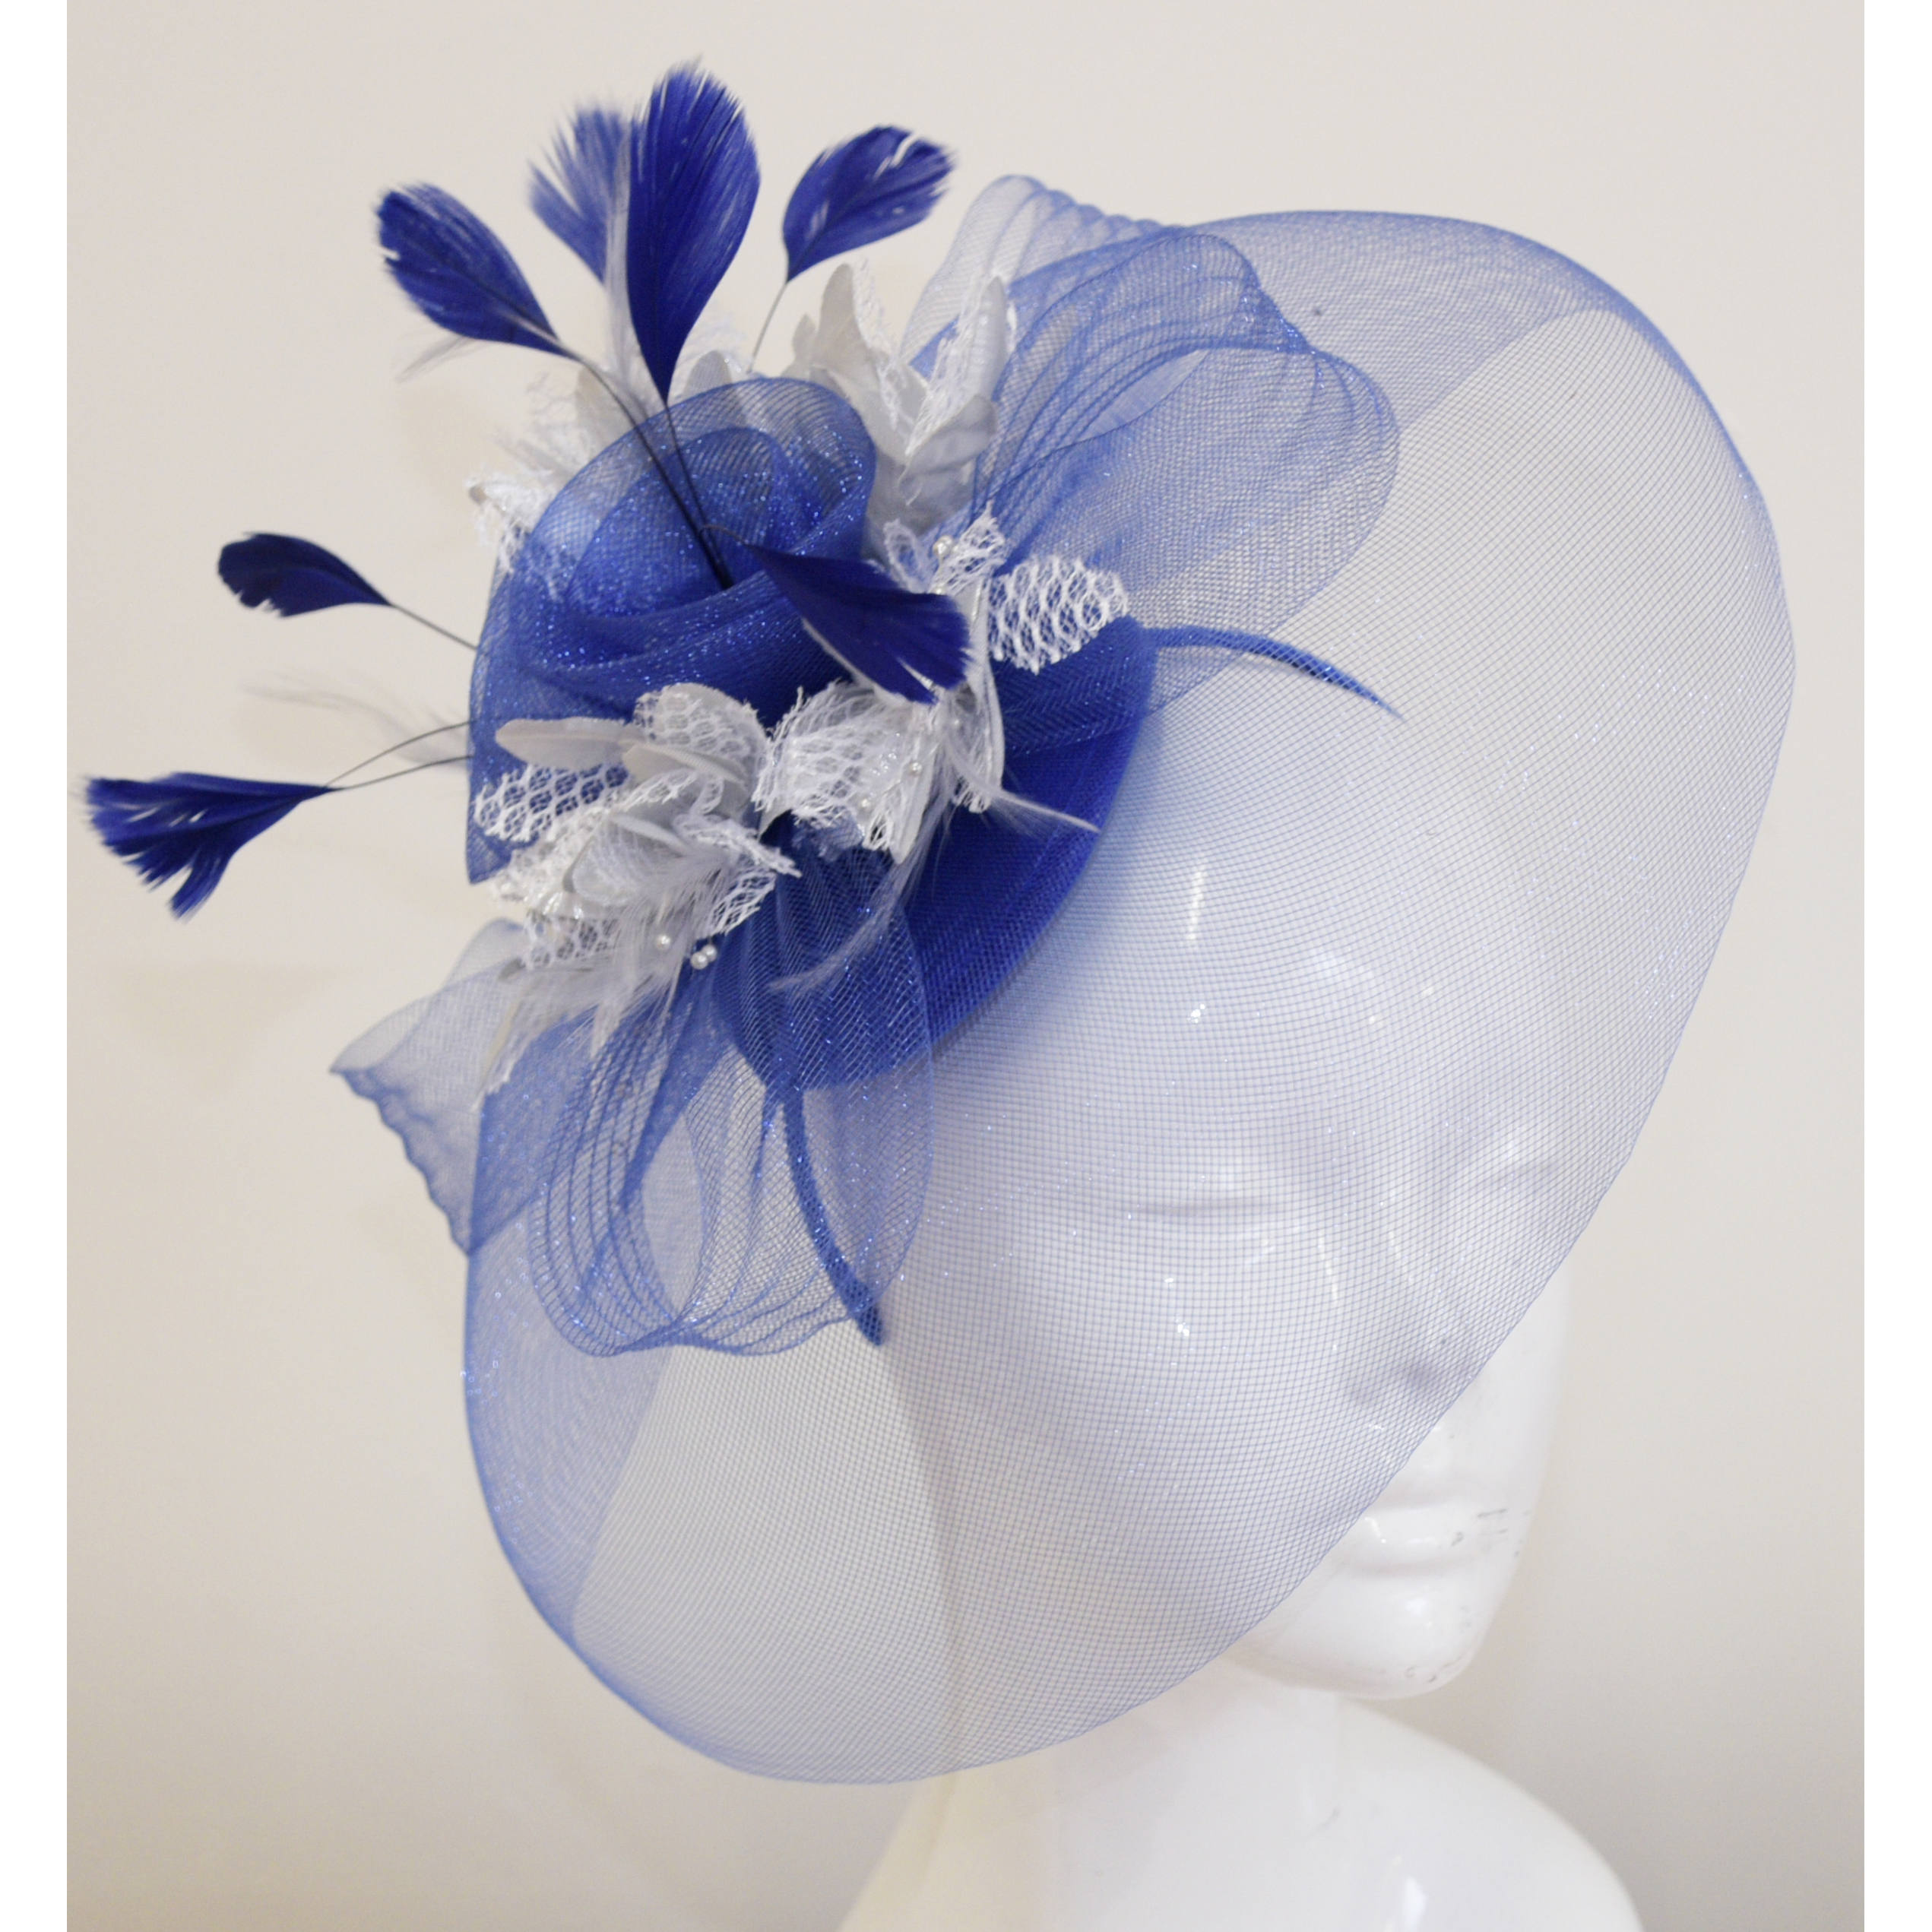 Caprilite Big Royal Blue and Silver Fascinator Hat Veil Net Hair Clip Ascot Derby Races Wedding Headband Feather Flower